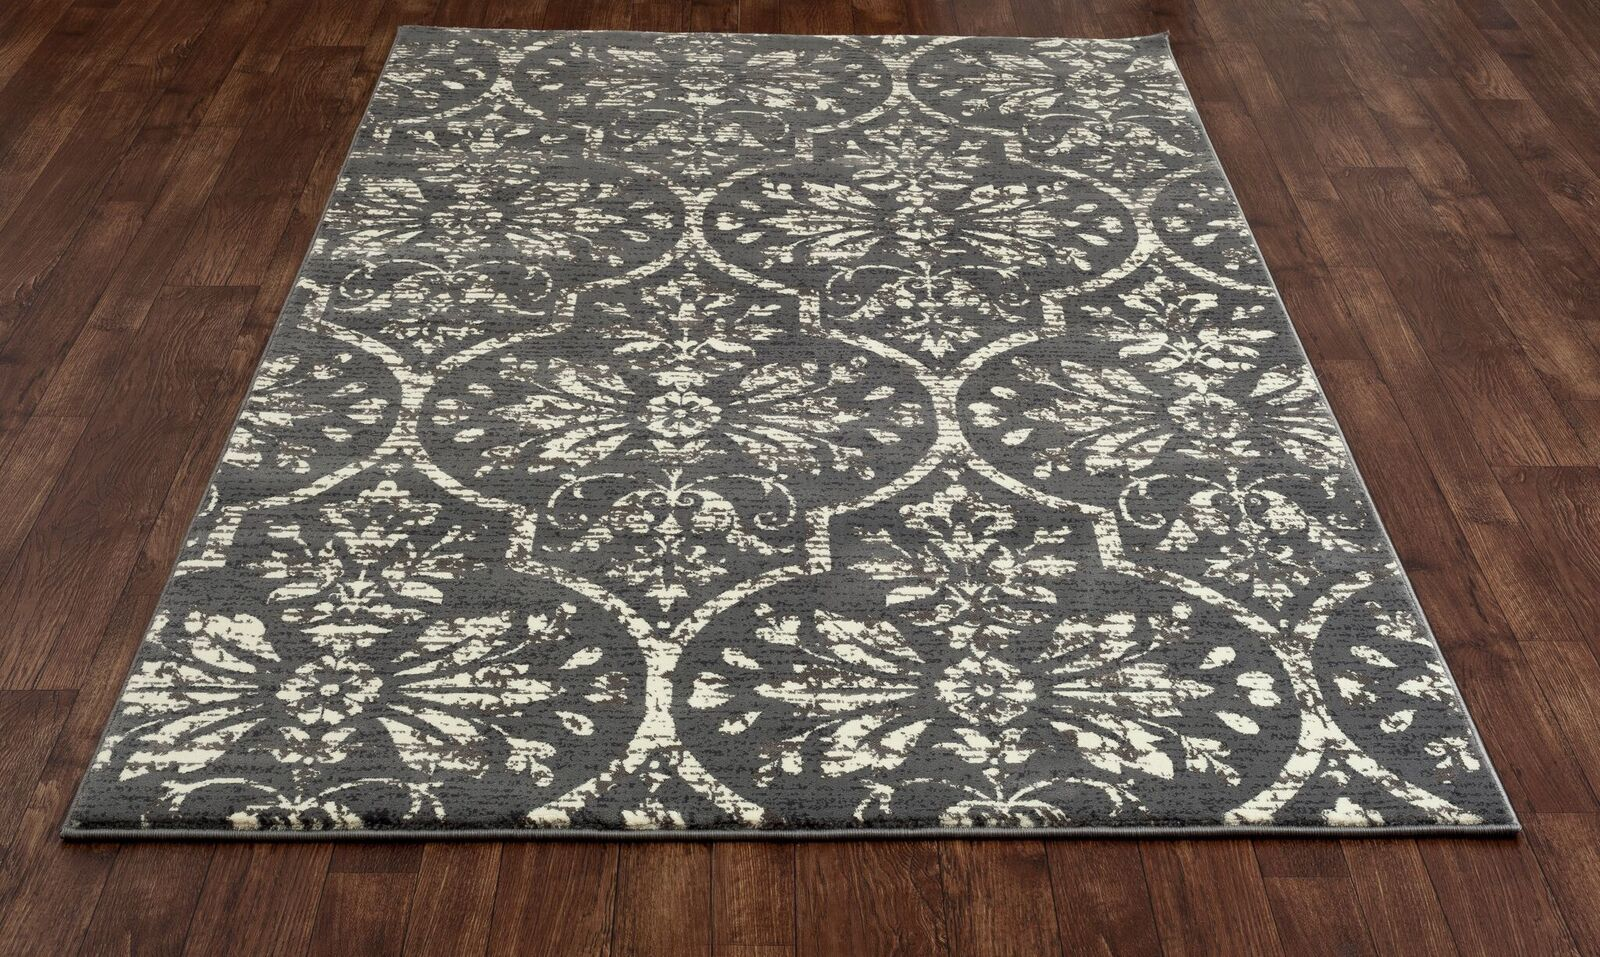 Channel Gray/Cream Area Rug Rug Size: 11' x 14'9